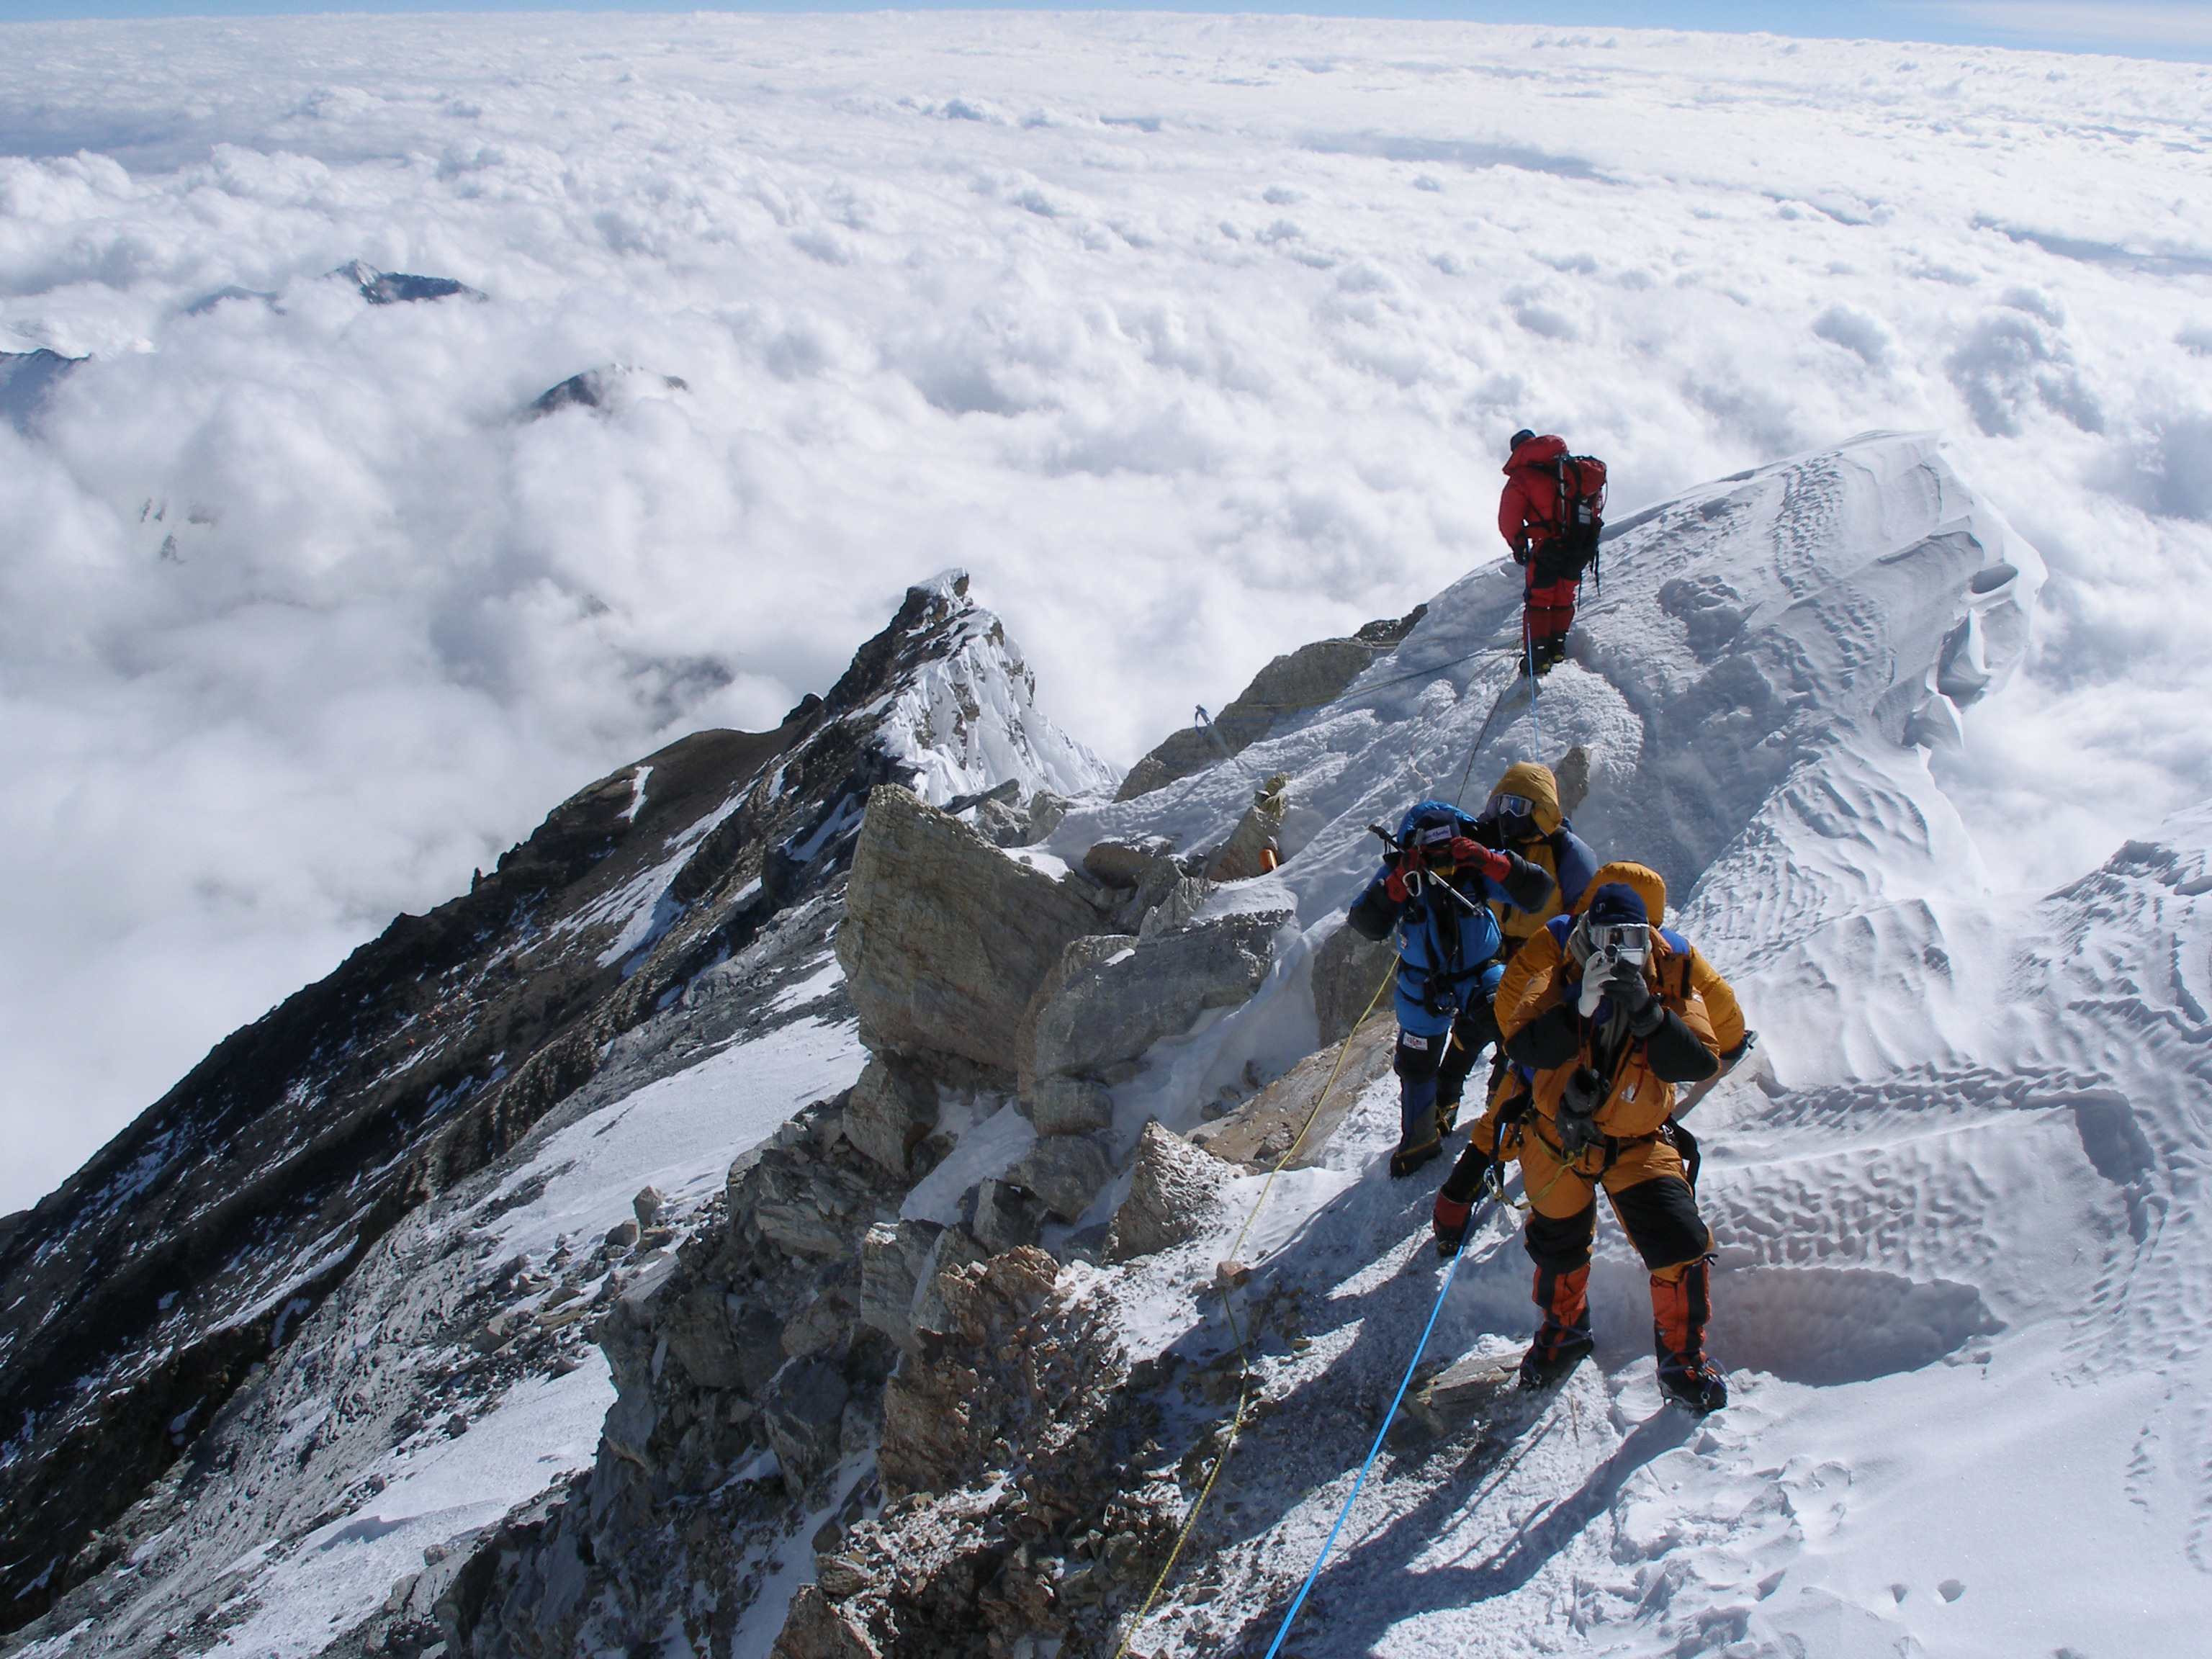 mountain climbing expeditions challenged - HD3072×2304